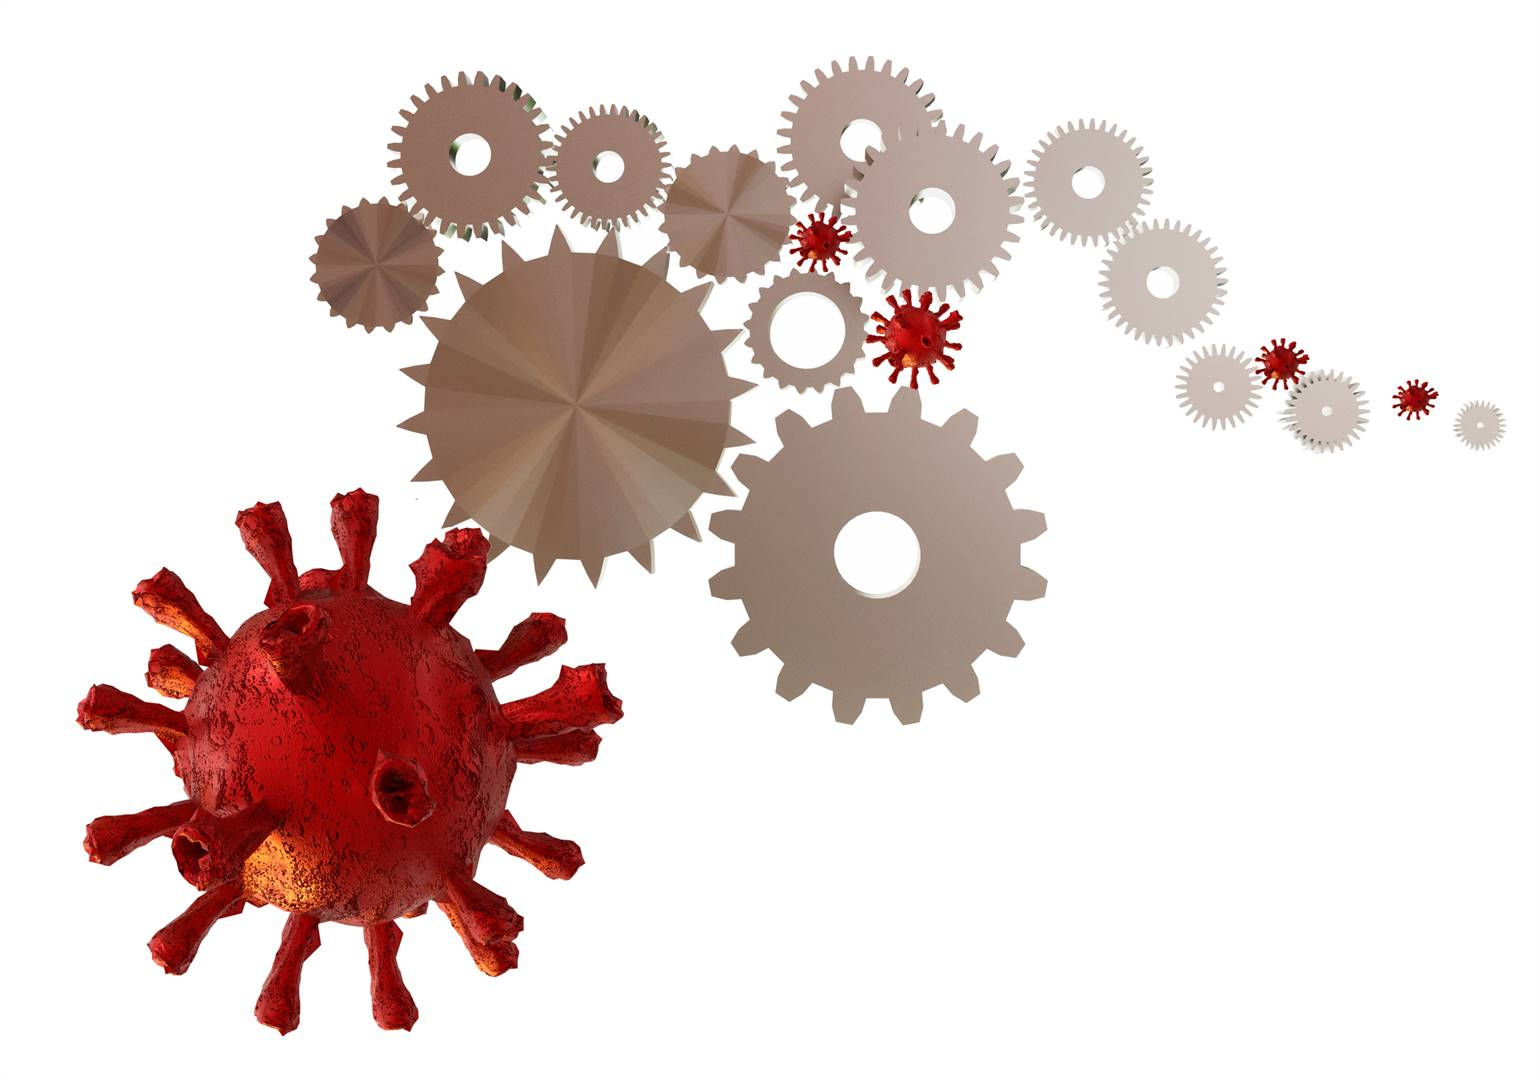 The Covid-19 coronavirus has changed the world and businesses need to adapt to survive. Picture: iStock/Gallo Images